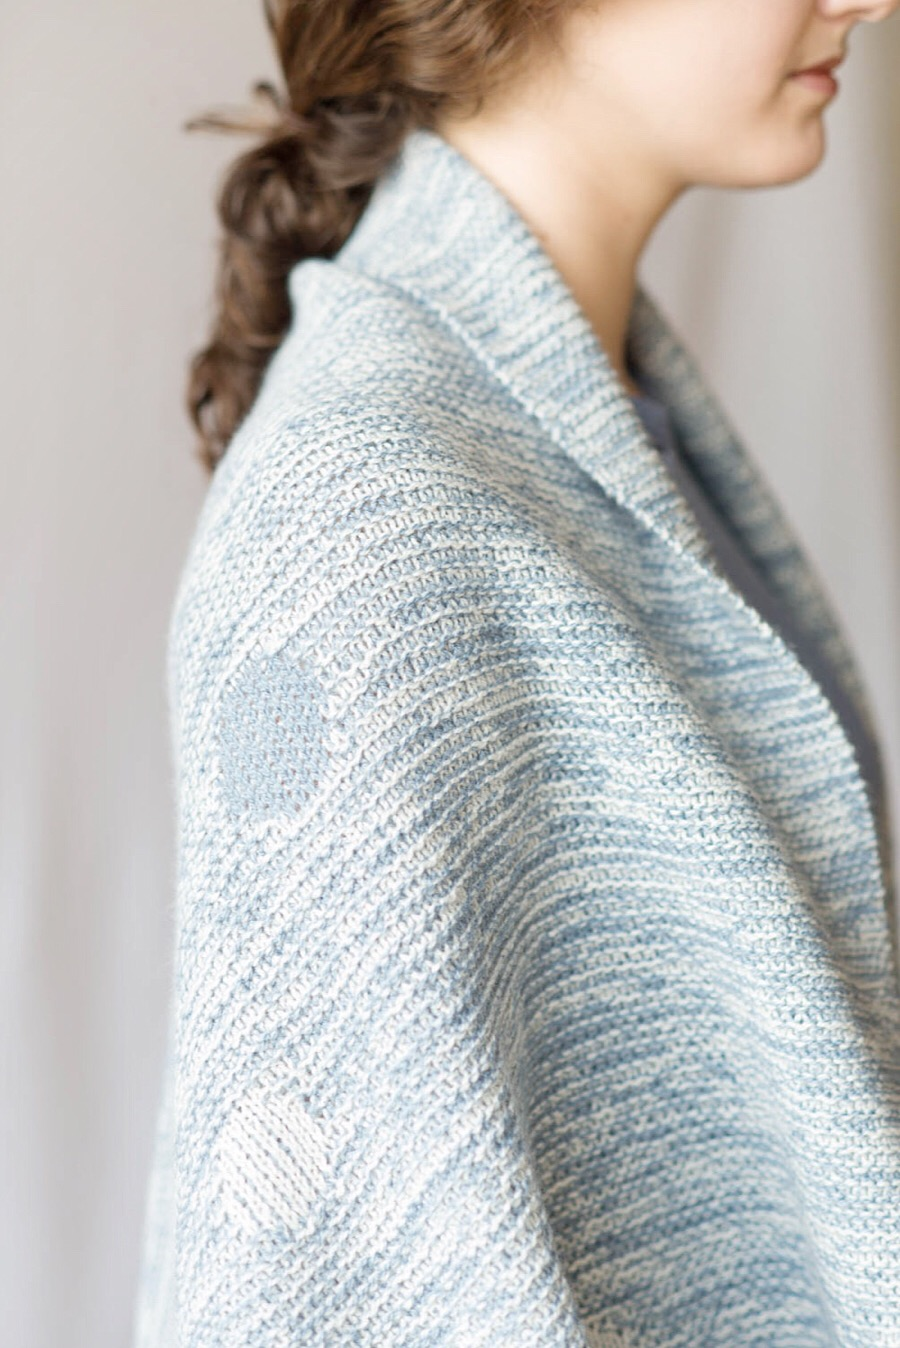 Awa Awa Wrap by Olga Buraya Kefelian from Making at Loop London